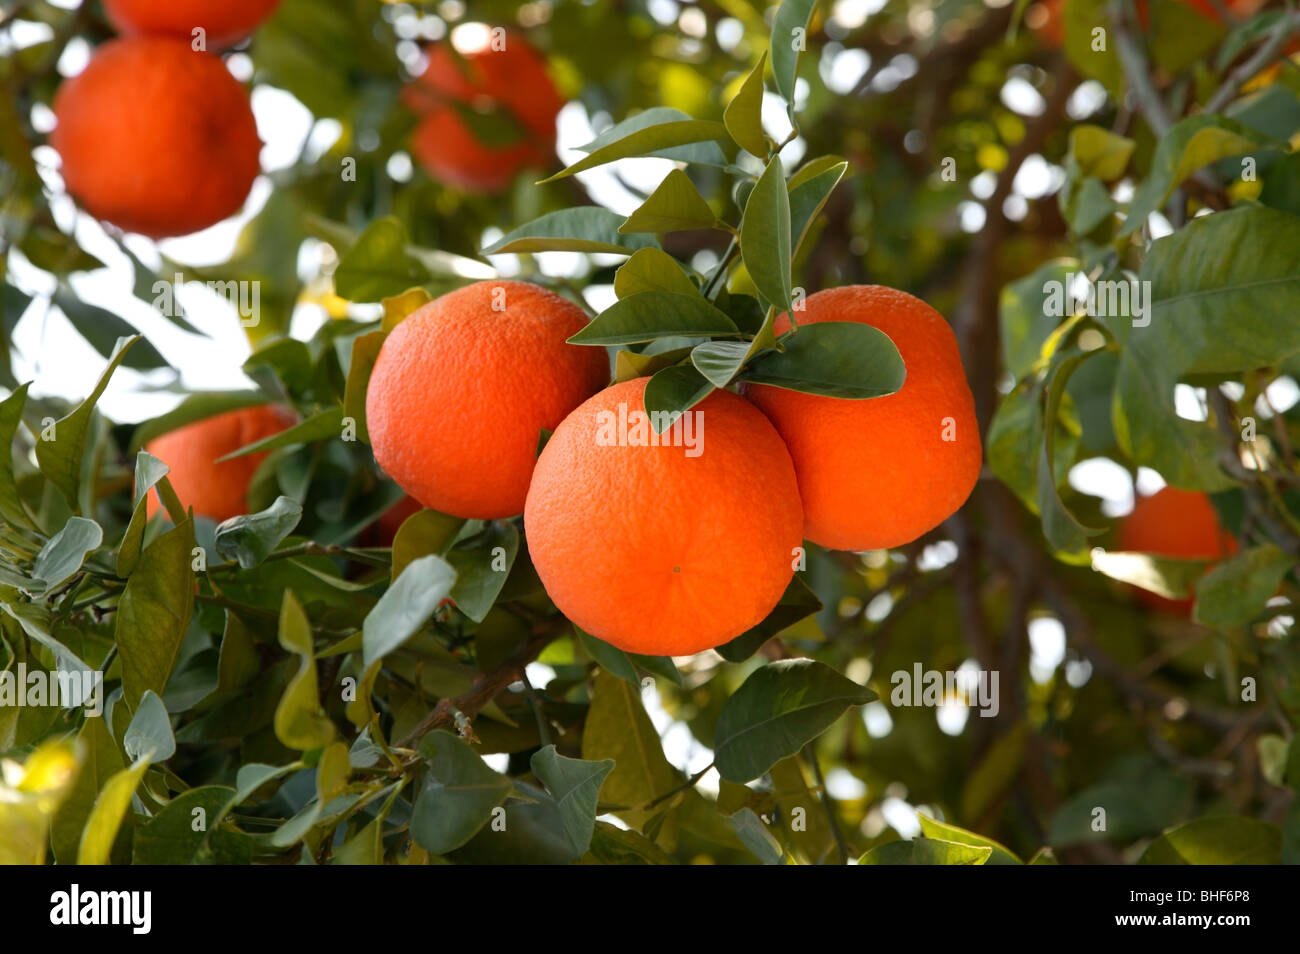 Fresh, ripe oranges growing on tree in Marrakech, Morocco. Stock Photo